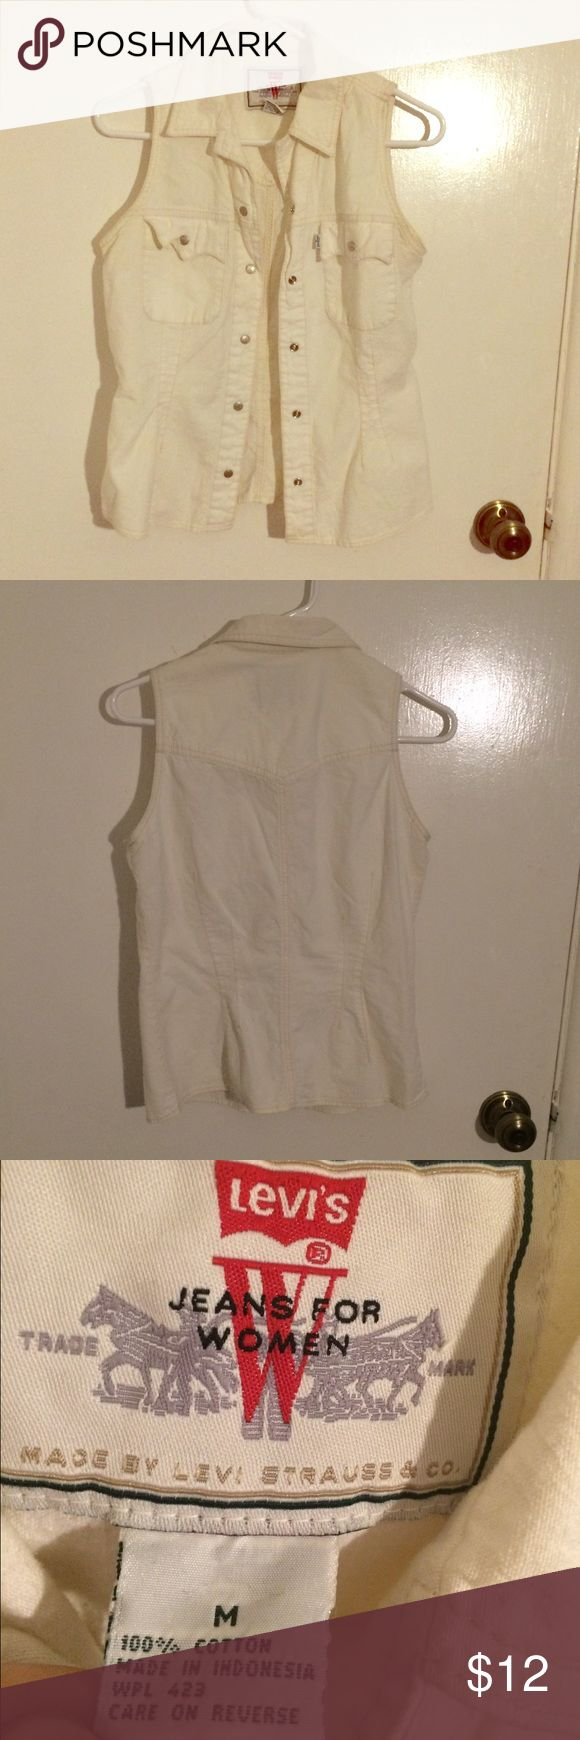 Levi's White Denim Vest Levi's Jeans for Women size medium 100% cotton white denim sleeveless collared button down best with silver tone snap button closures and two breast pockets that also have silver snap button closures with a flap. Gently used with some wear to the fabric but nothing very noticeable. There are no stains, rips, holes, tears, odors, or missing buttons. In good condition. Fabric has been washed many times and looks a bit different than when first purchased which is why…